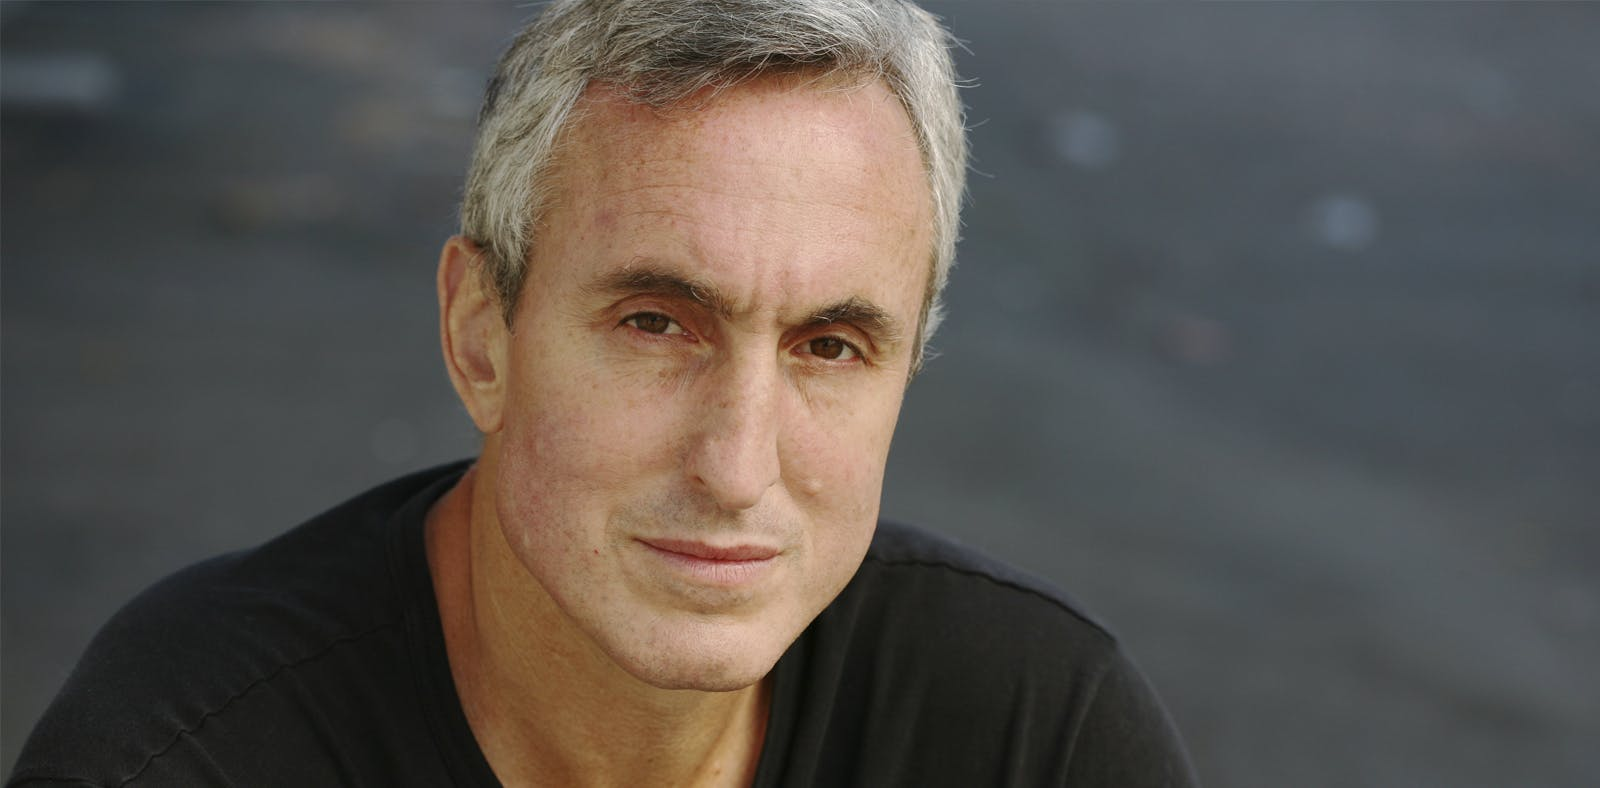 Only two spots left for the Gary Taubes dinner in London November 19